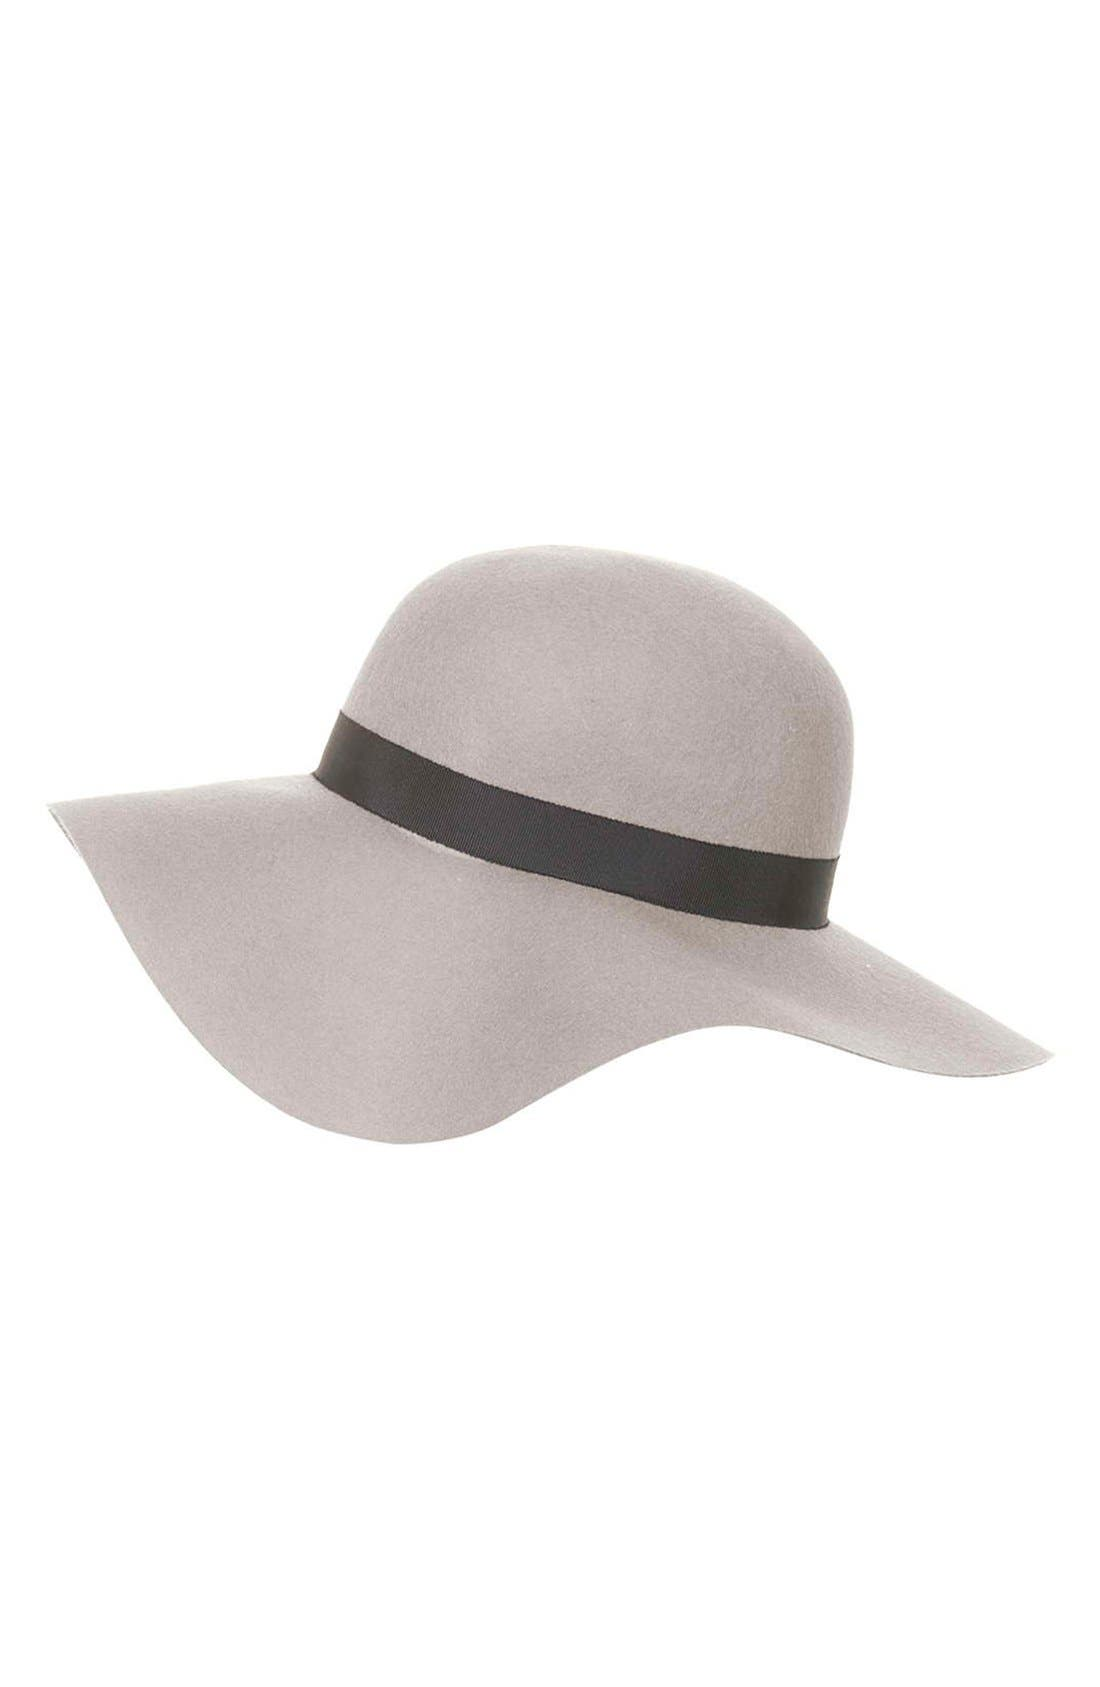 Alternate Image 3  - Topshop Floppy Wool Felt Hat